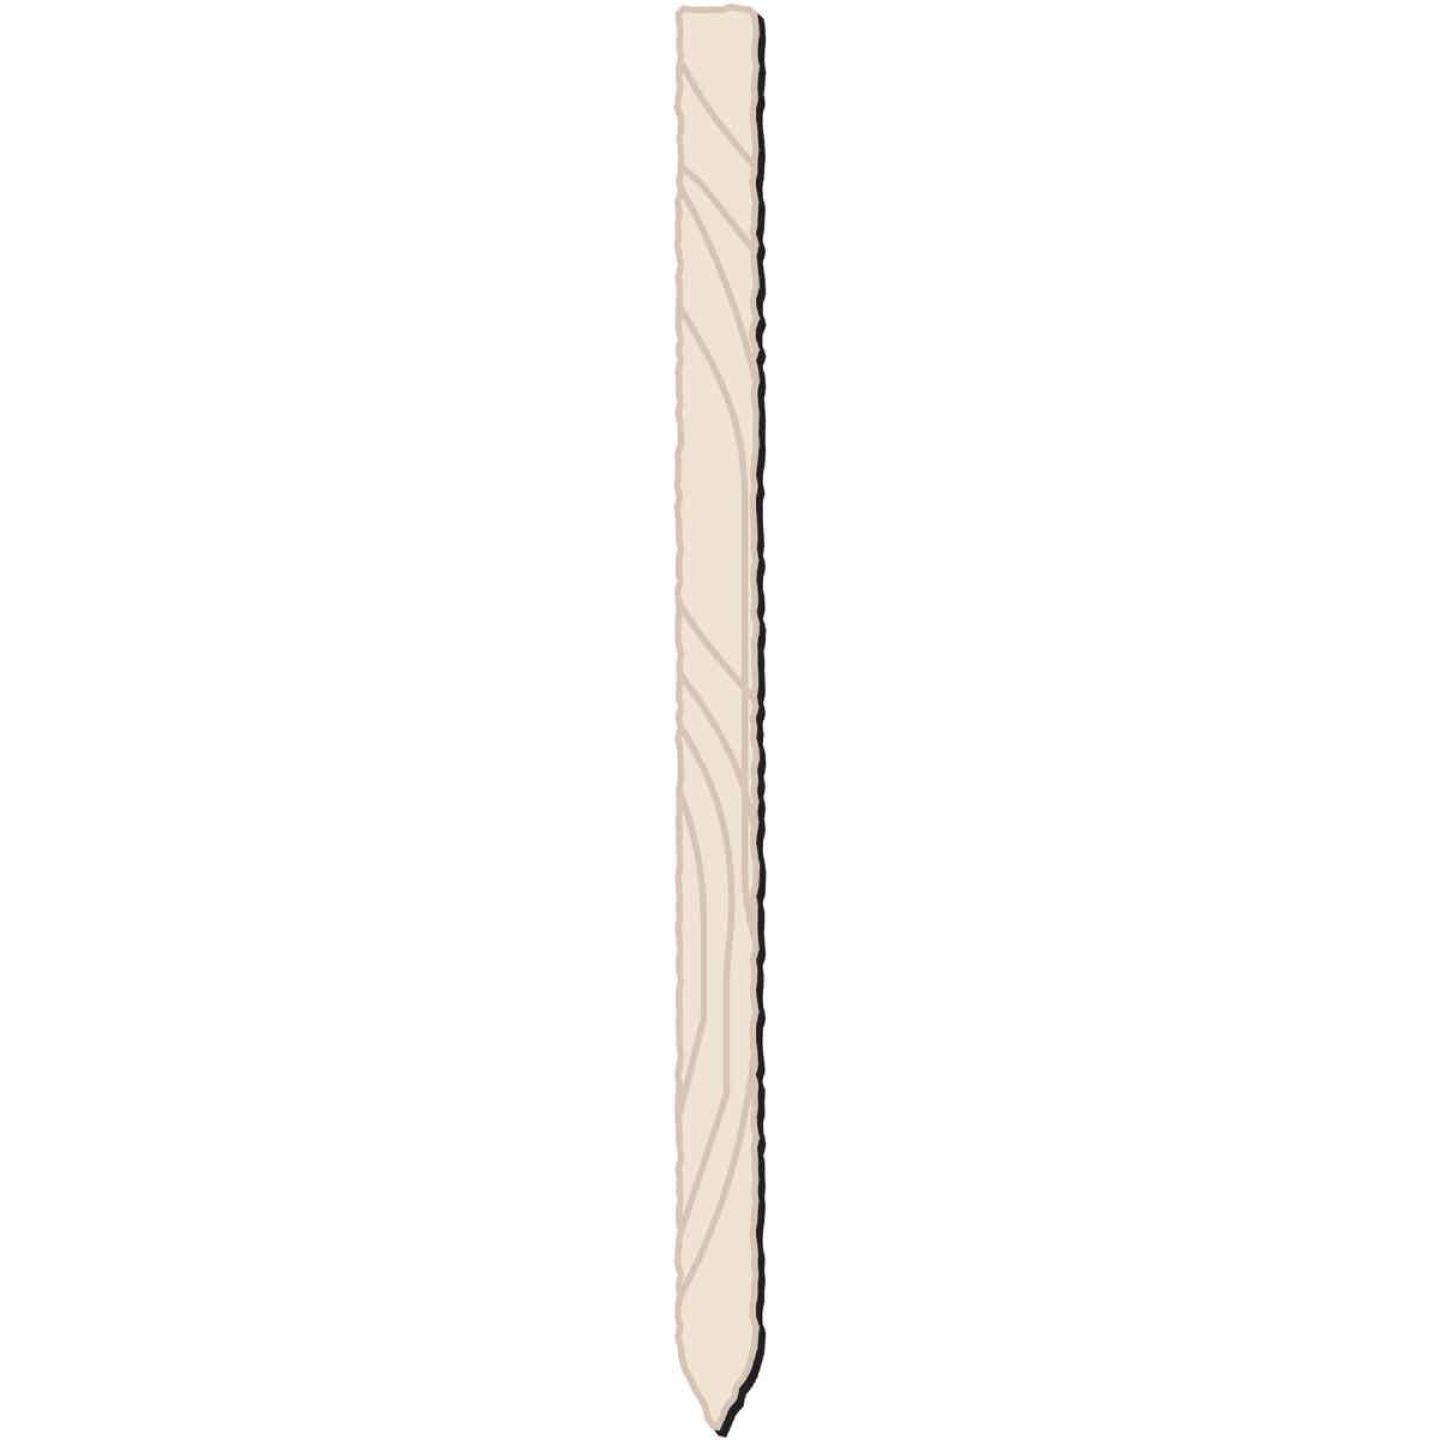 Hy-Ko 1 In. x 36 In. Wooden Sign Stake Image 1